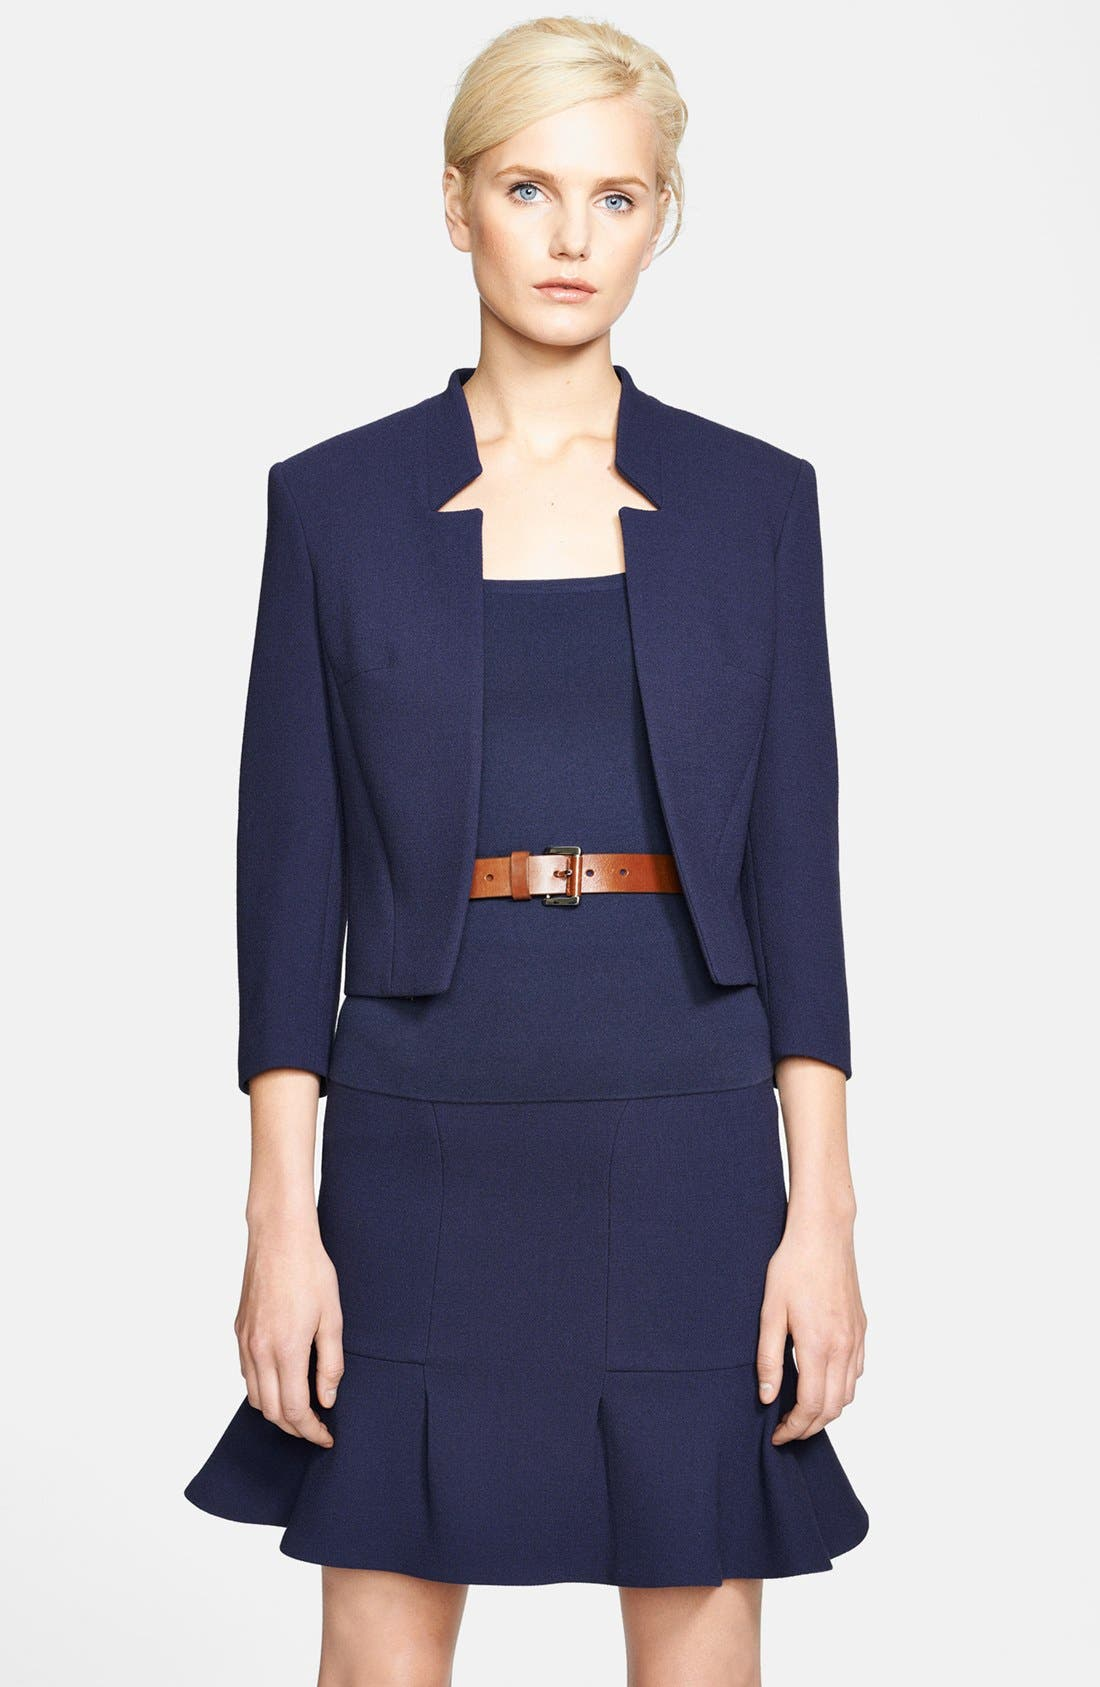 Alternate Image 1 Selected - Michael Kors Bouclé Stretch Wool Jacket